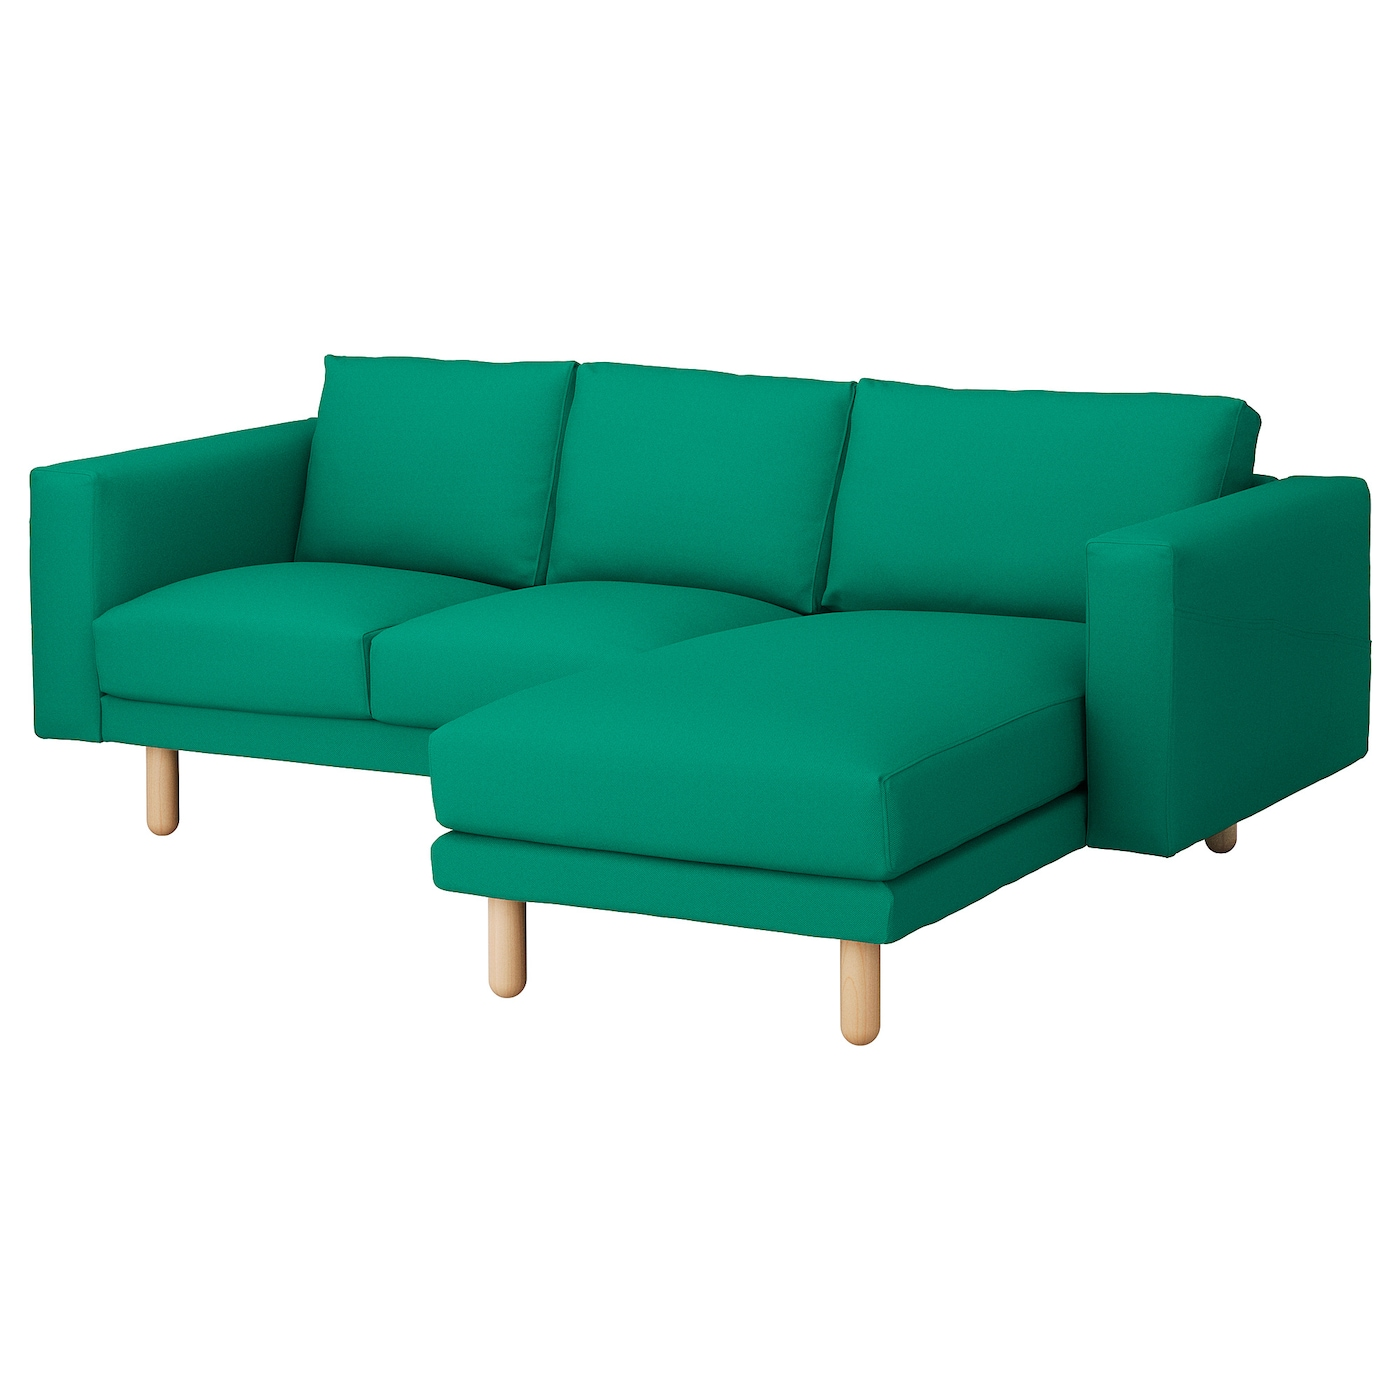 Sofa covers ikea ireland dublin for Chaise longue northern ireland